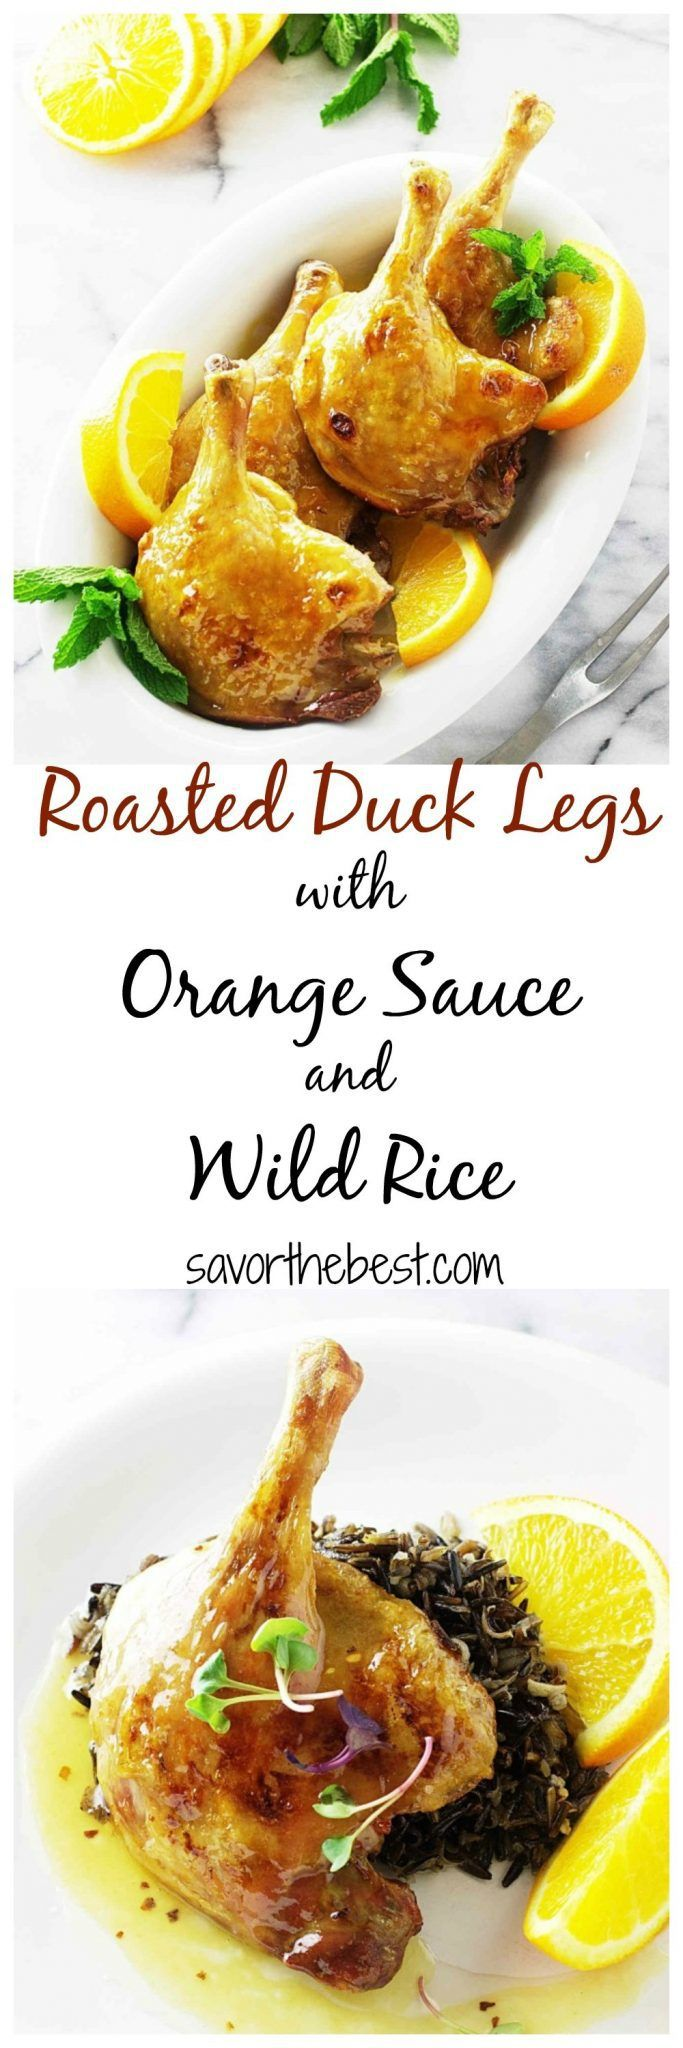 Roasted duck legs with orange sauce and wild rice is an elegant entree for a special event. The duck legs are moist, succulent and the flavors shine with the zesty orange sauce